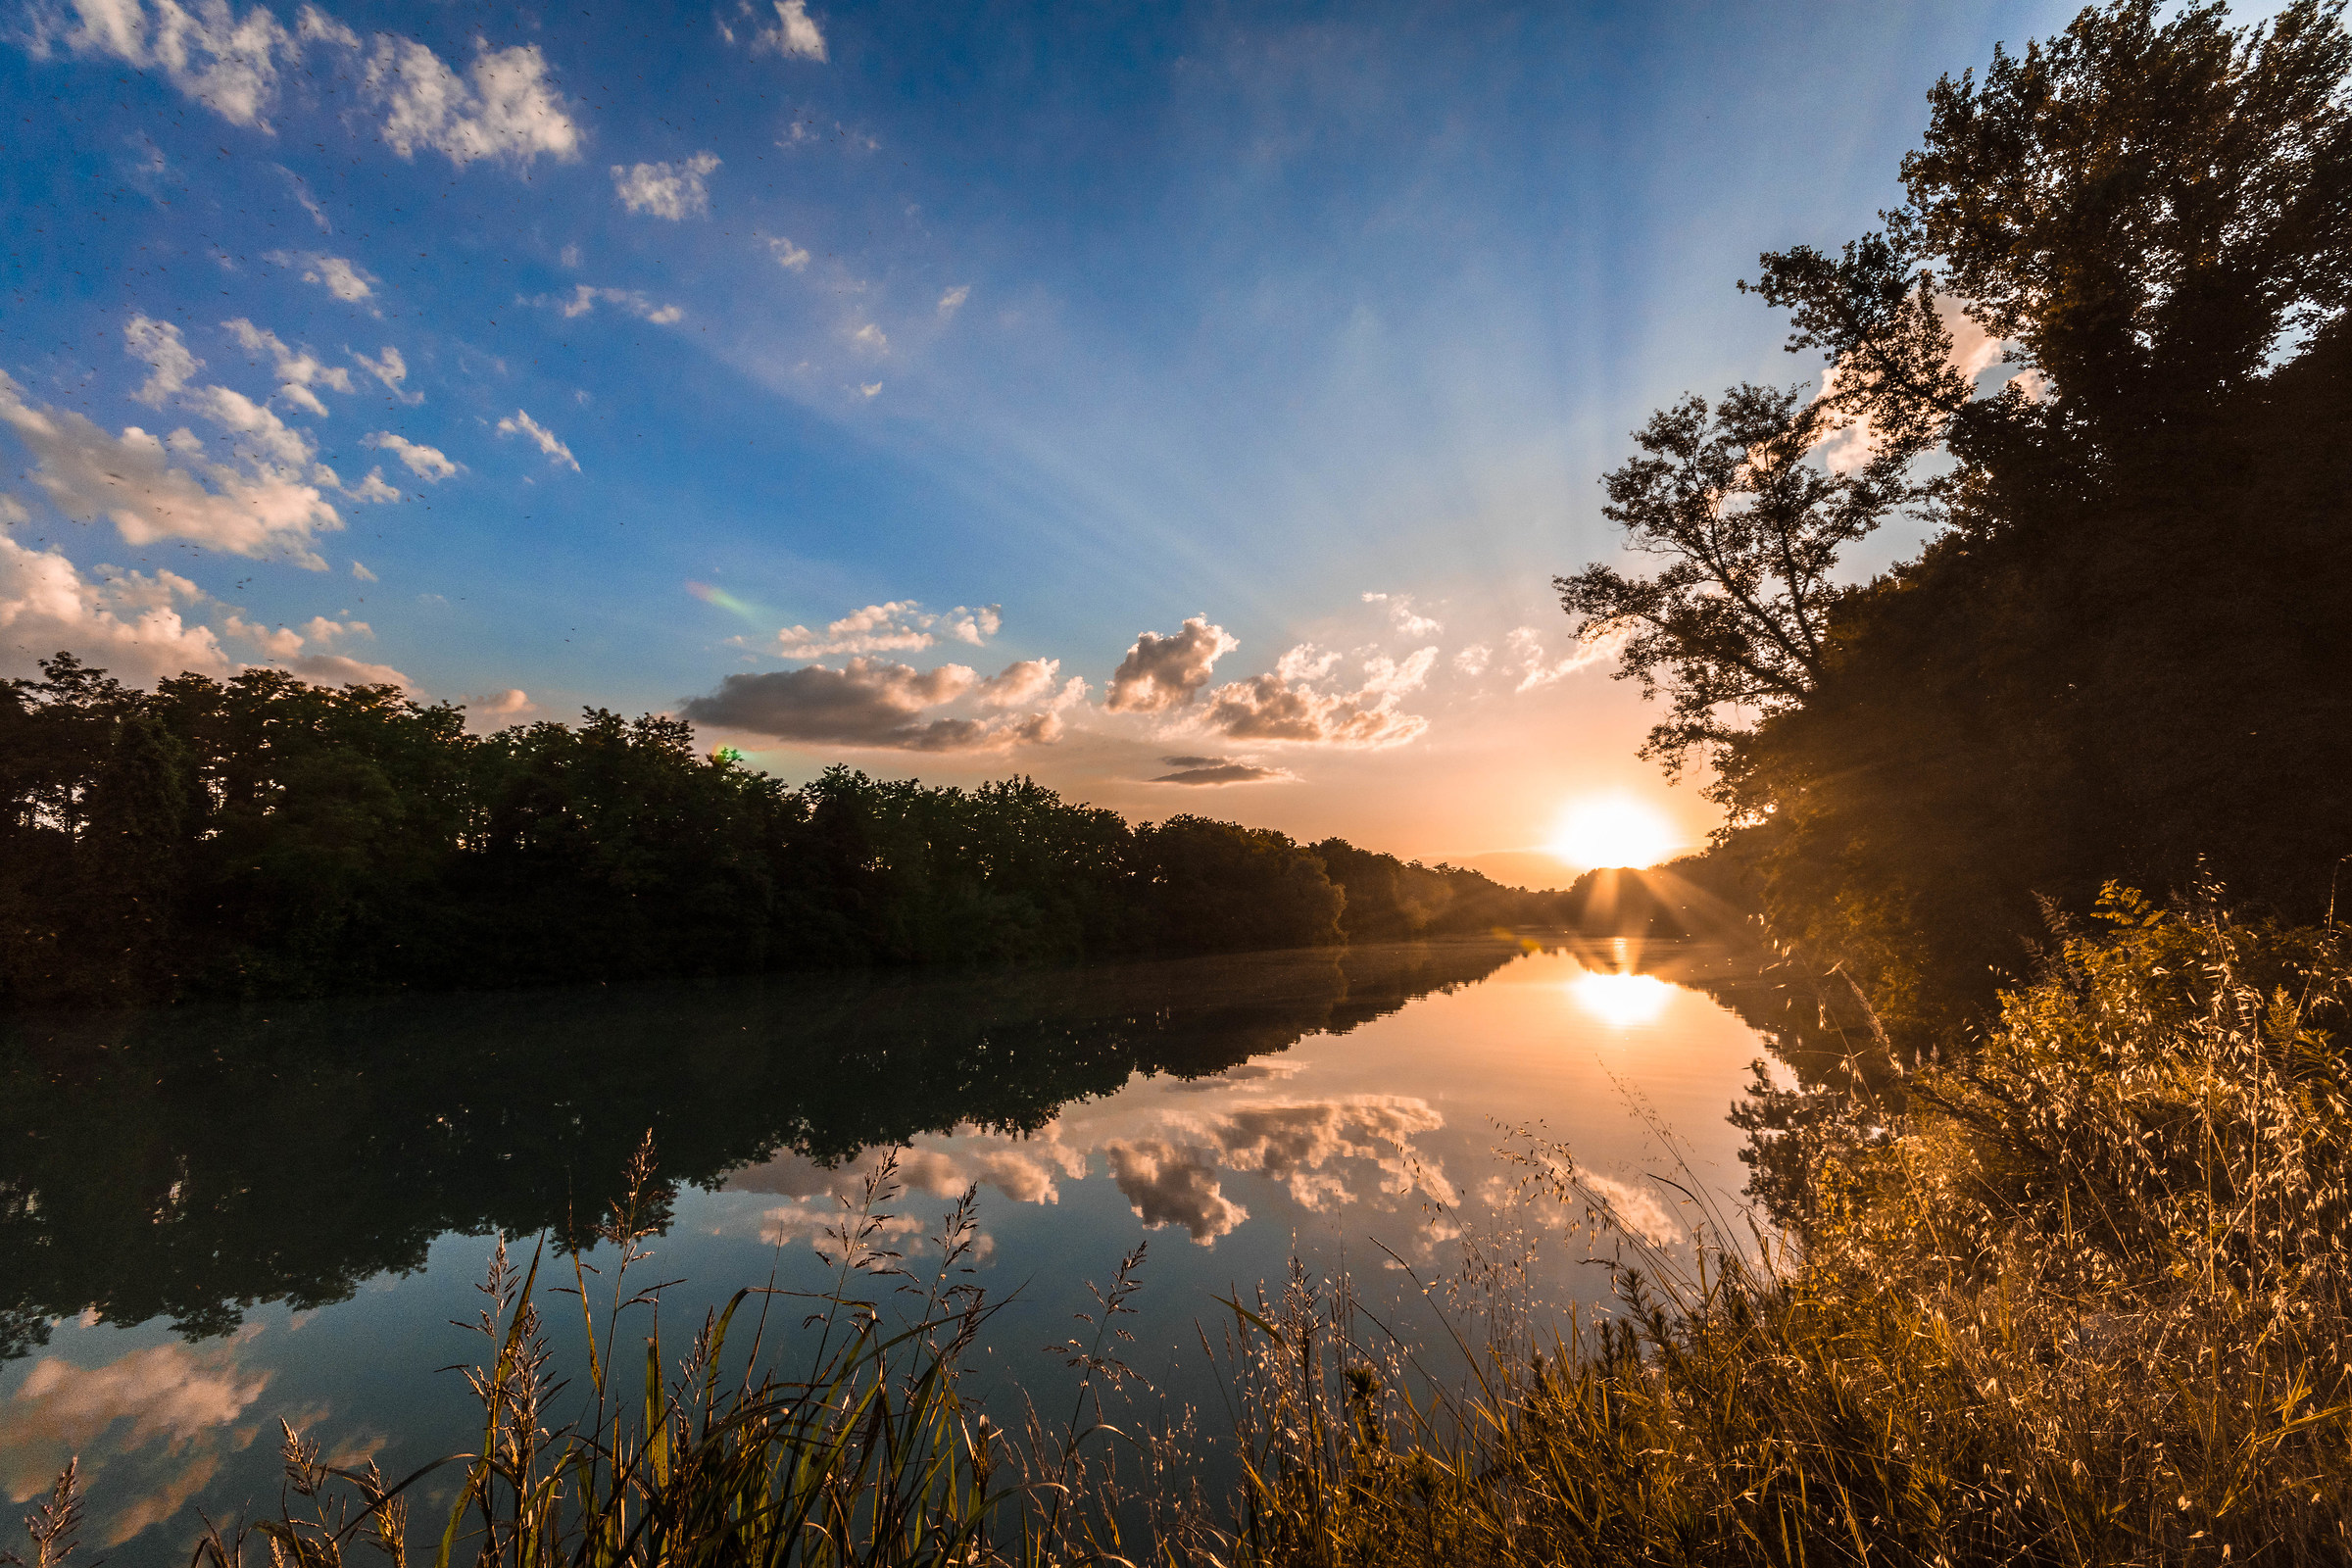 Sunset on the Piave...